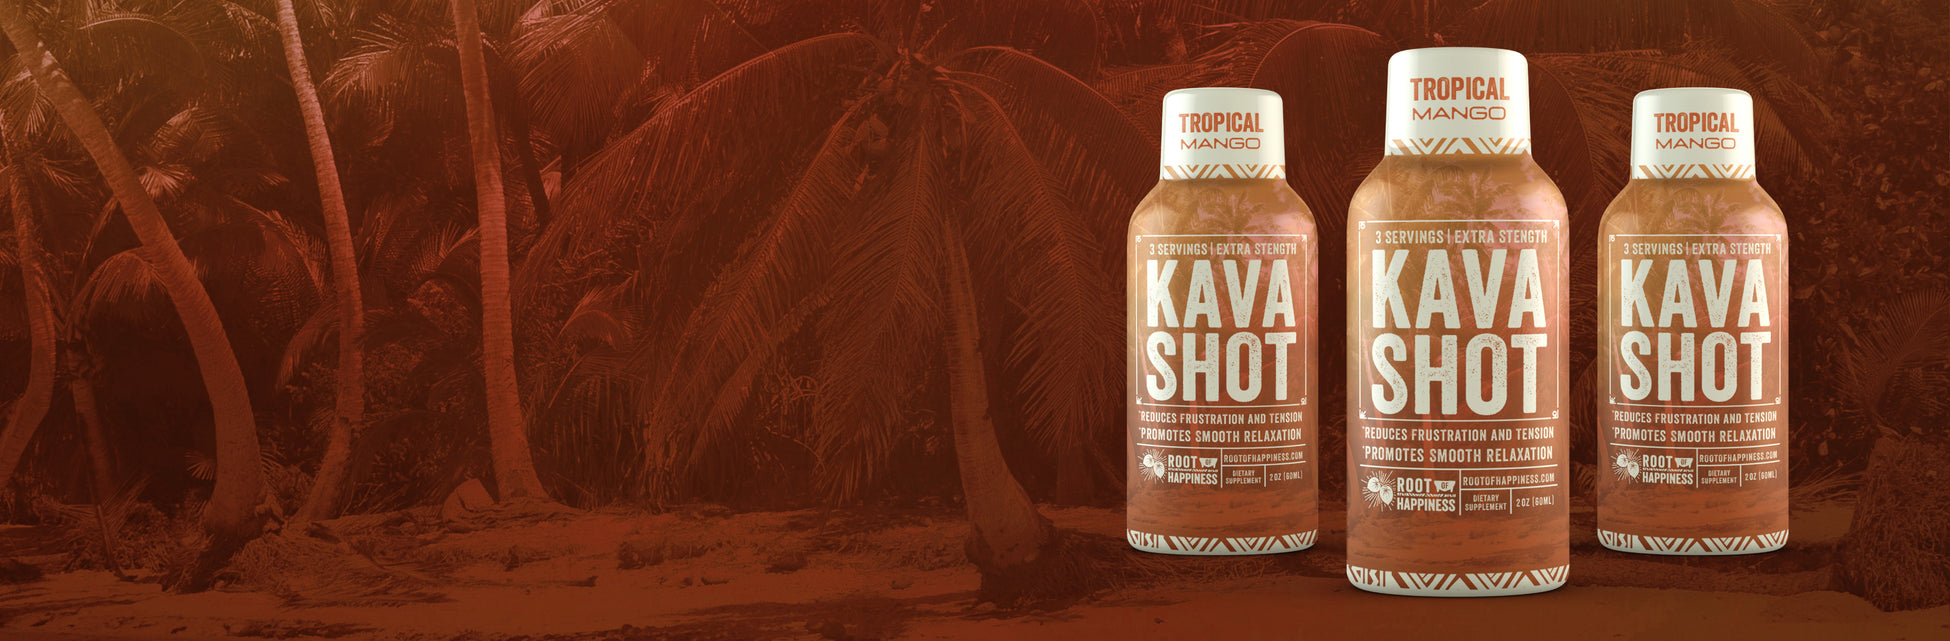 Tropical Mango Kava Shot